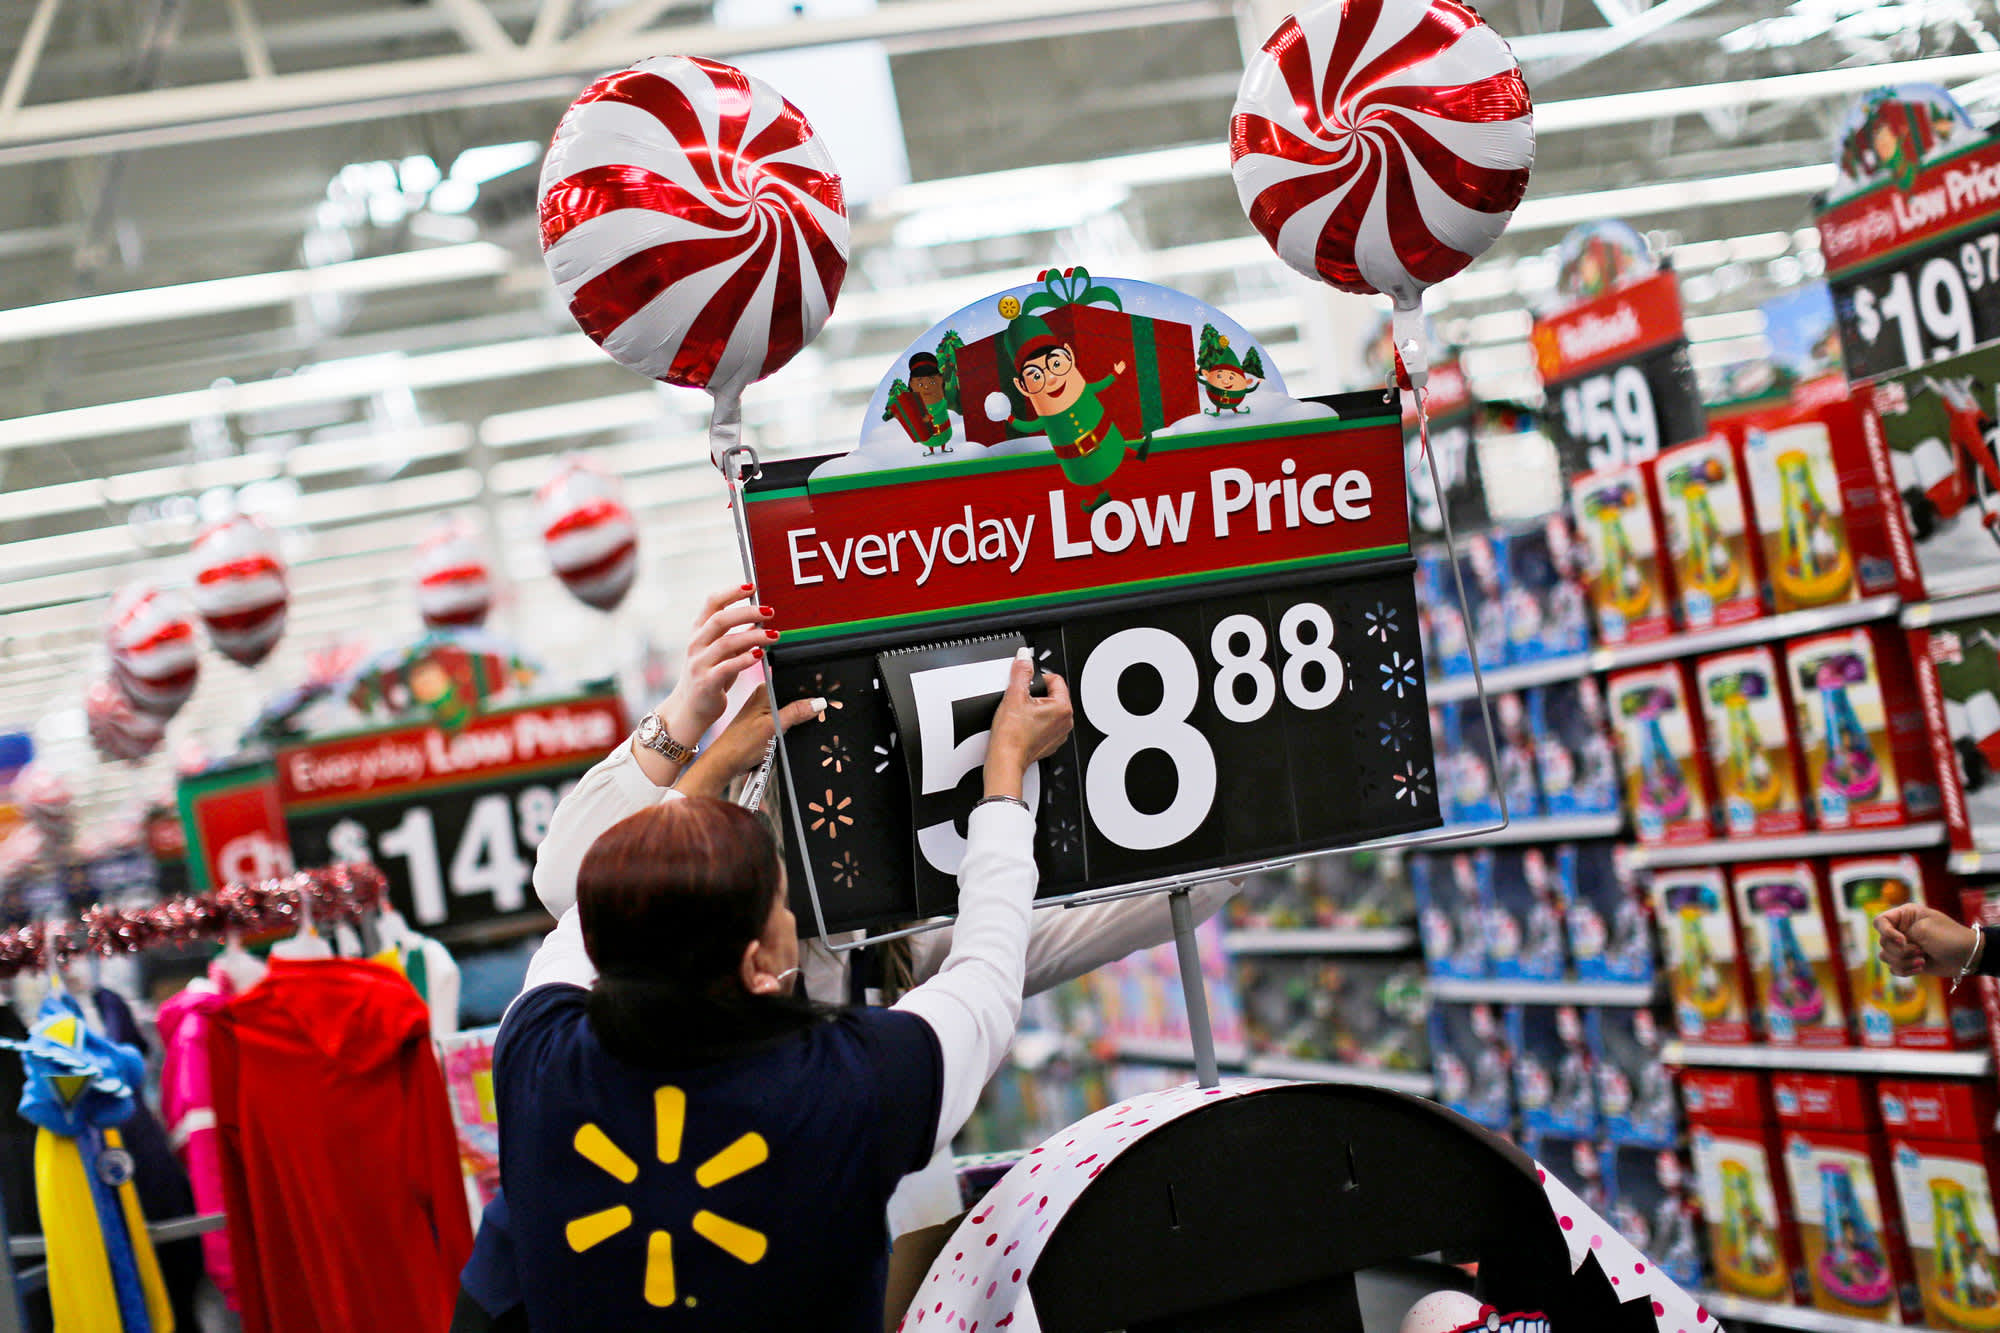 Walmart looks to hire 20,000 workers to help pack and ship holiday orders this year